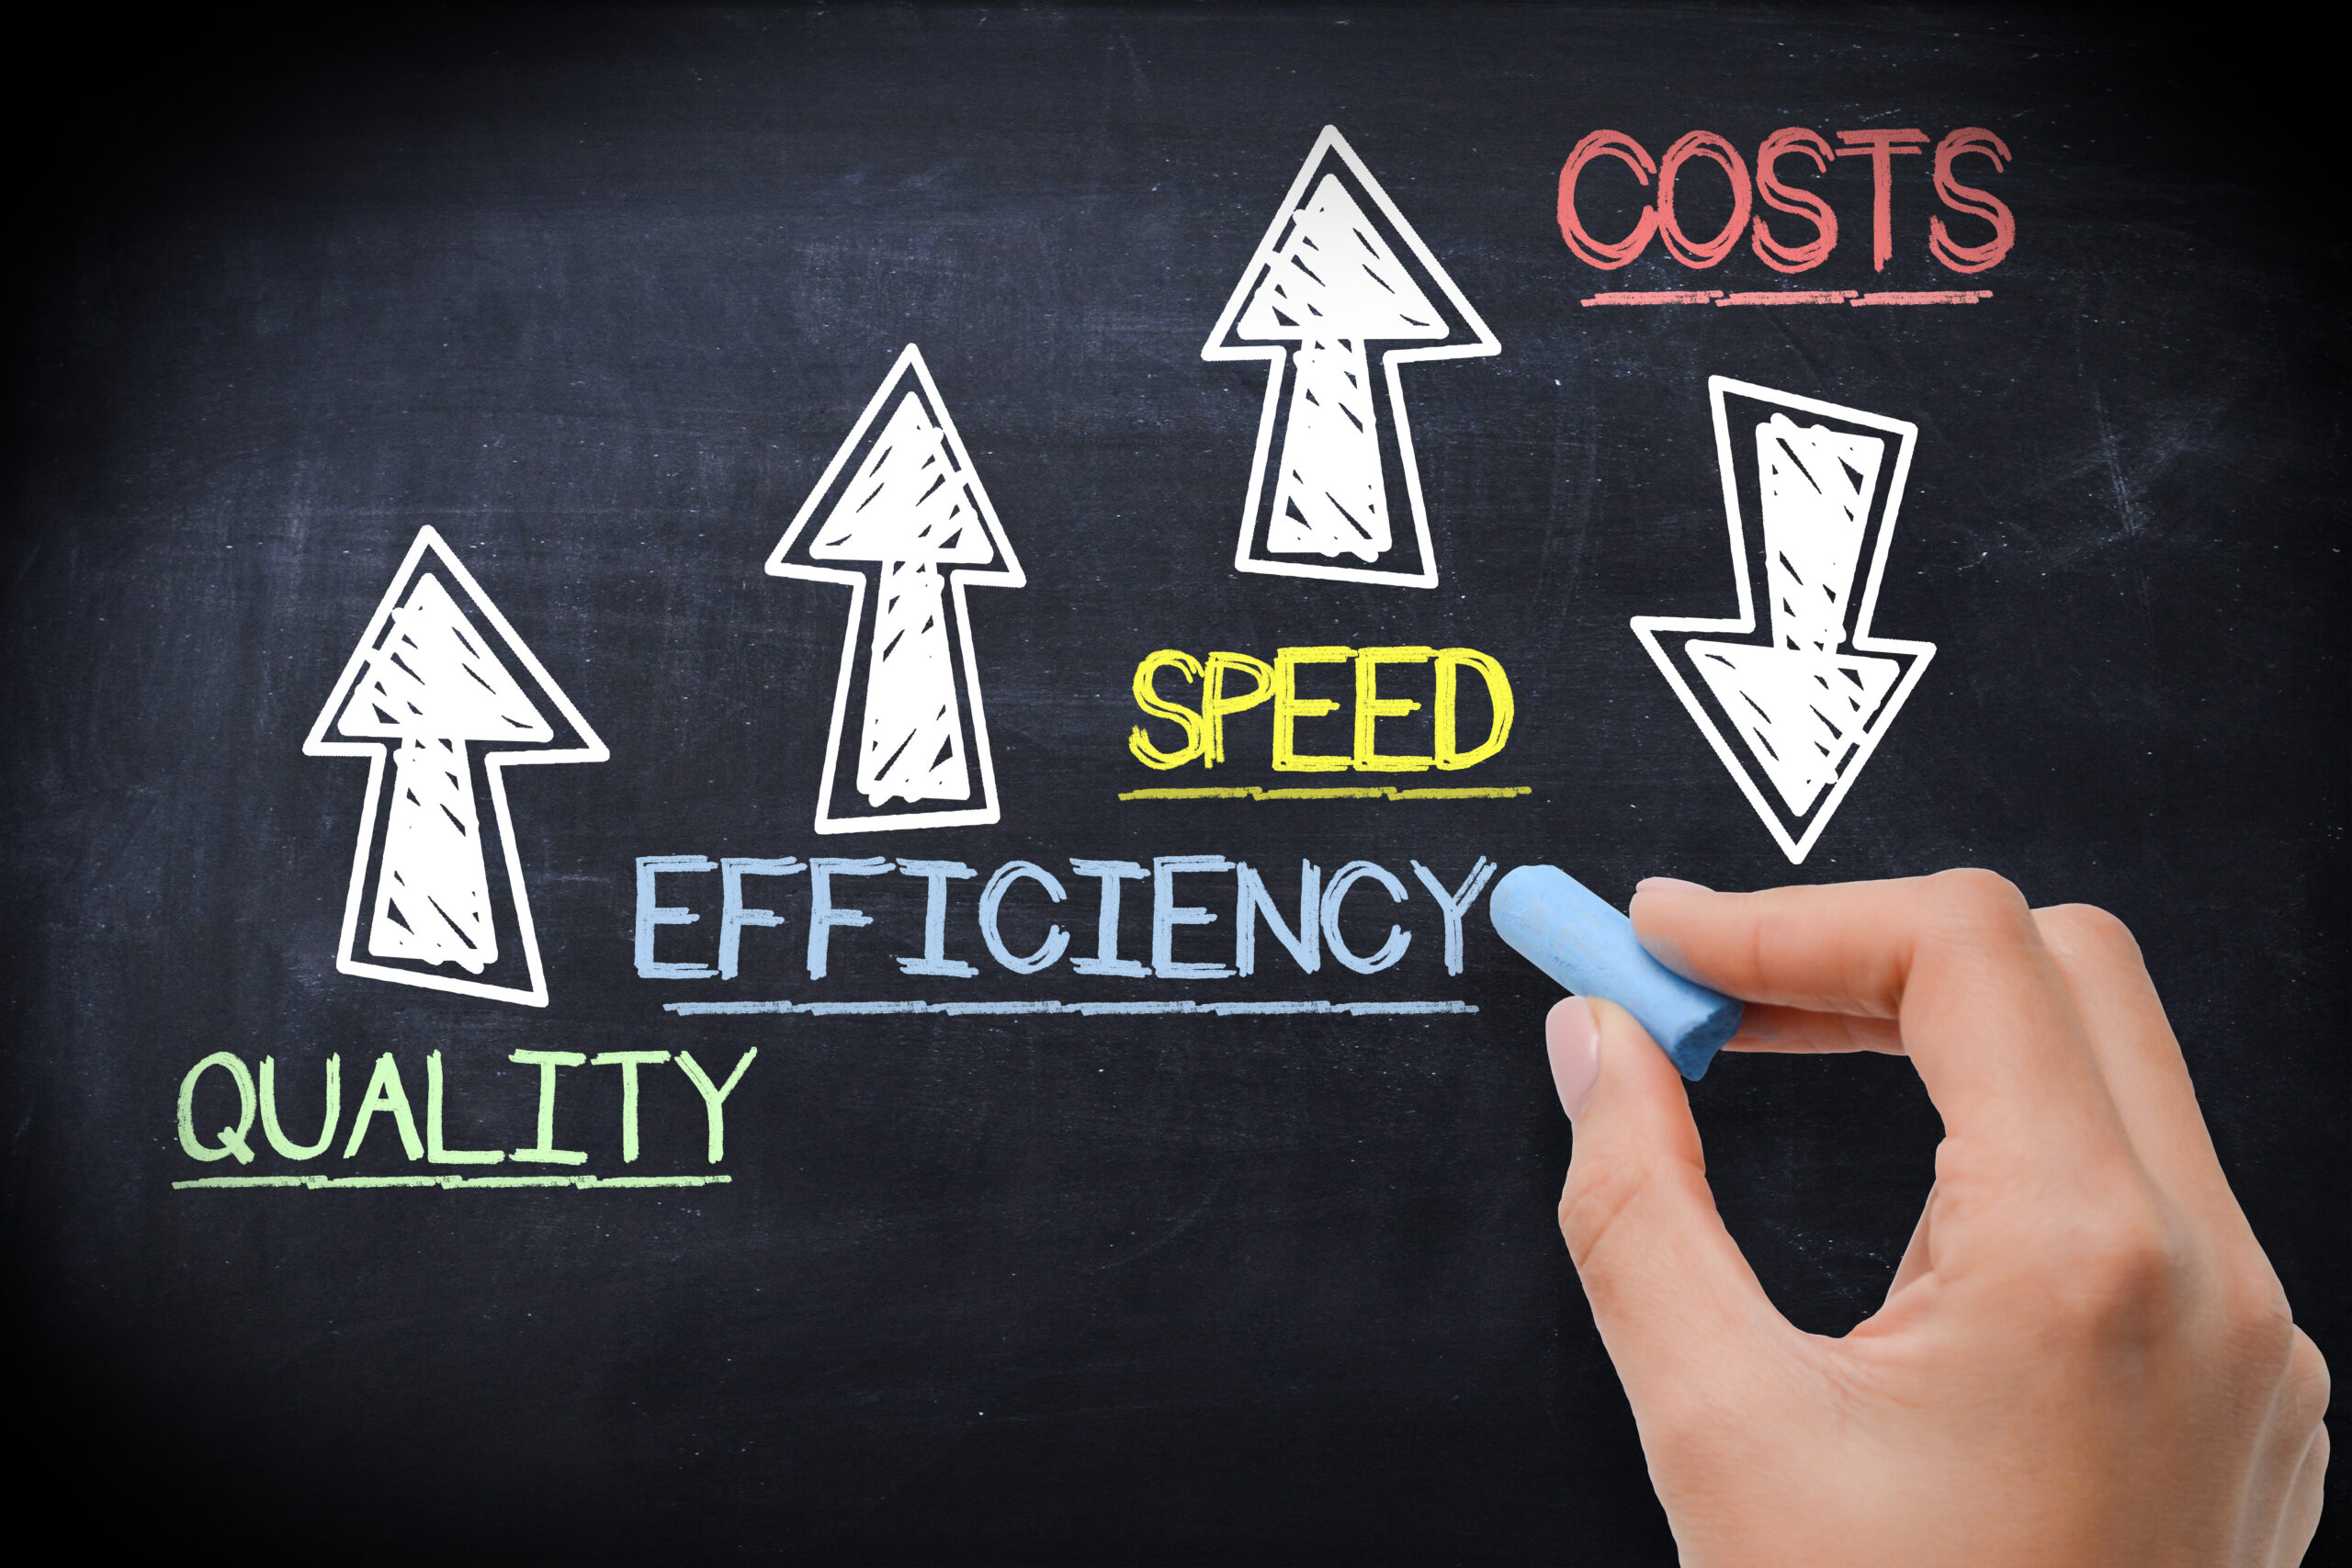 How To Save On Operational Costs Without Sacrificing Quality